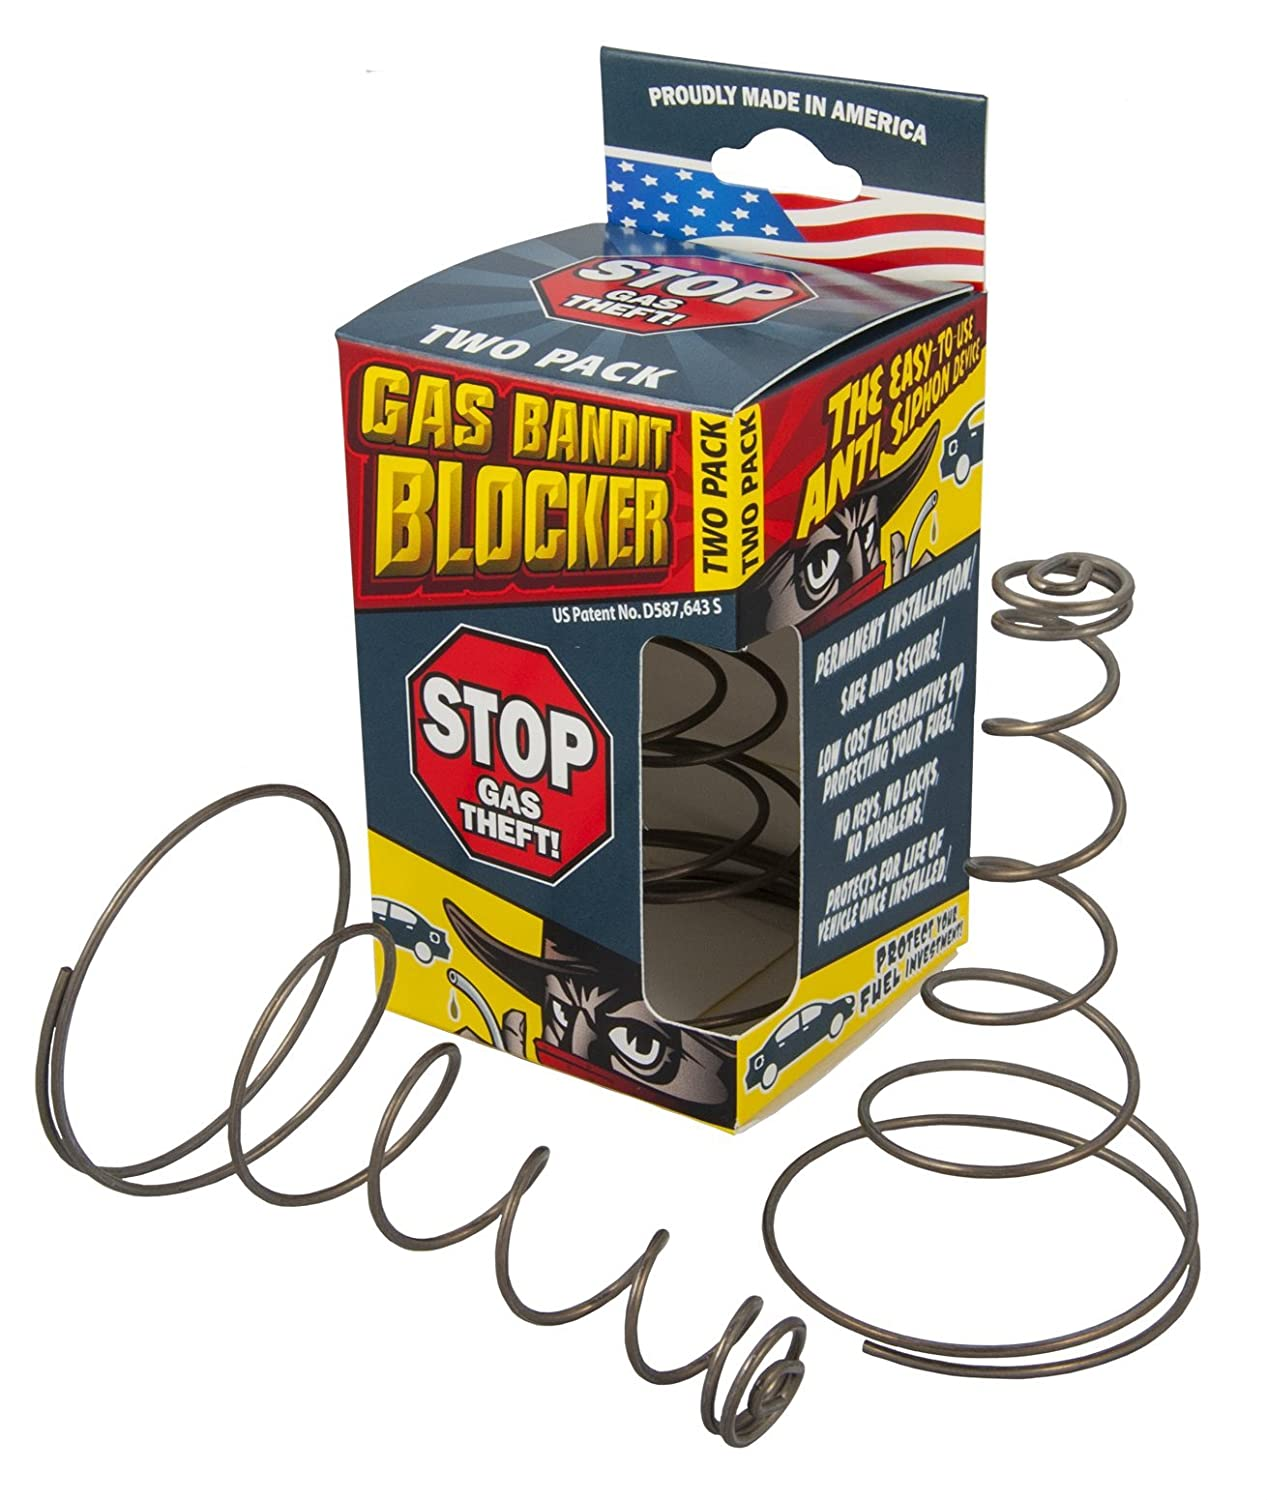 Stanco Gas Bandit Blocker - Fuel Anti-Siphon Device 2-Pack